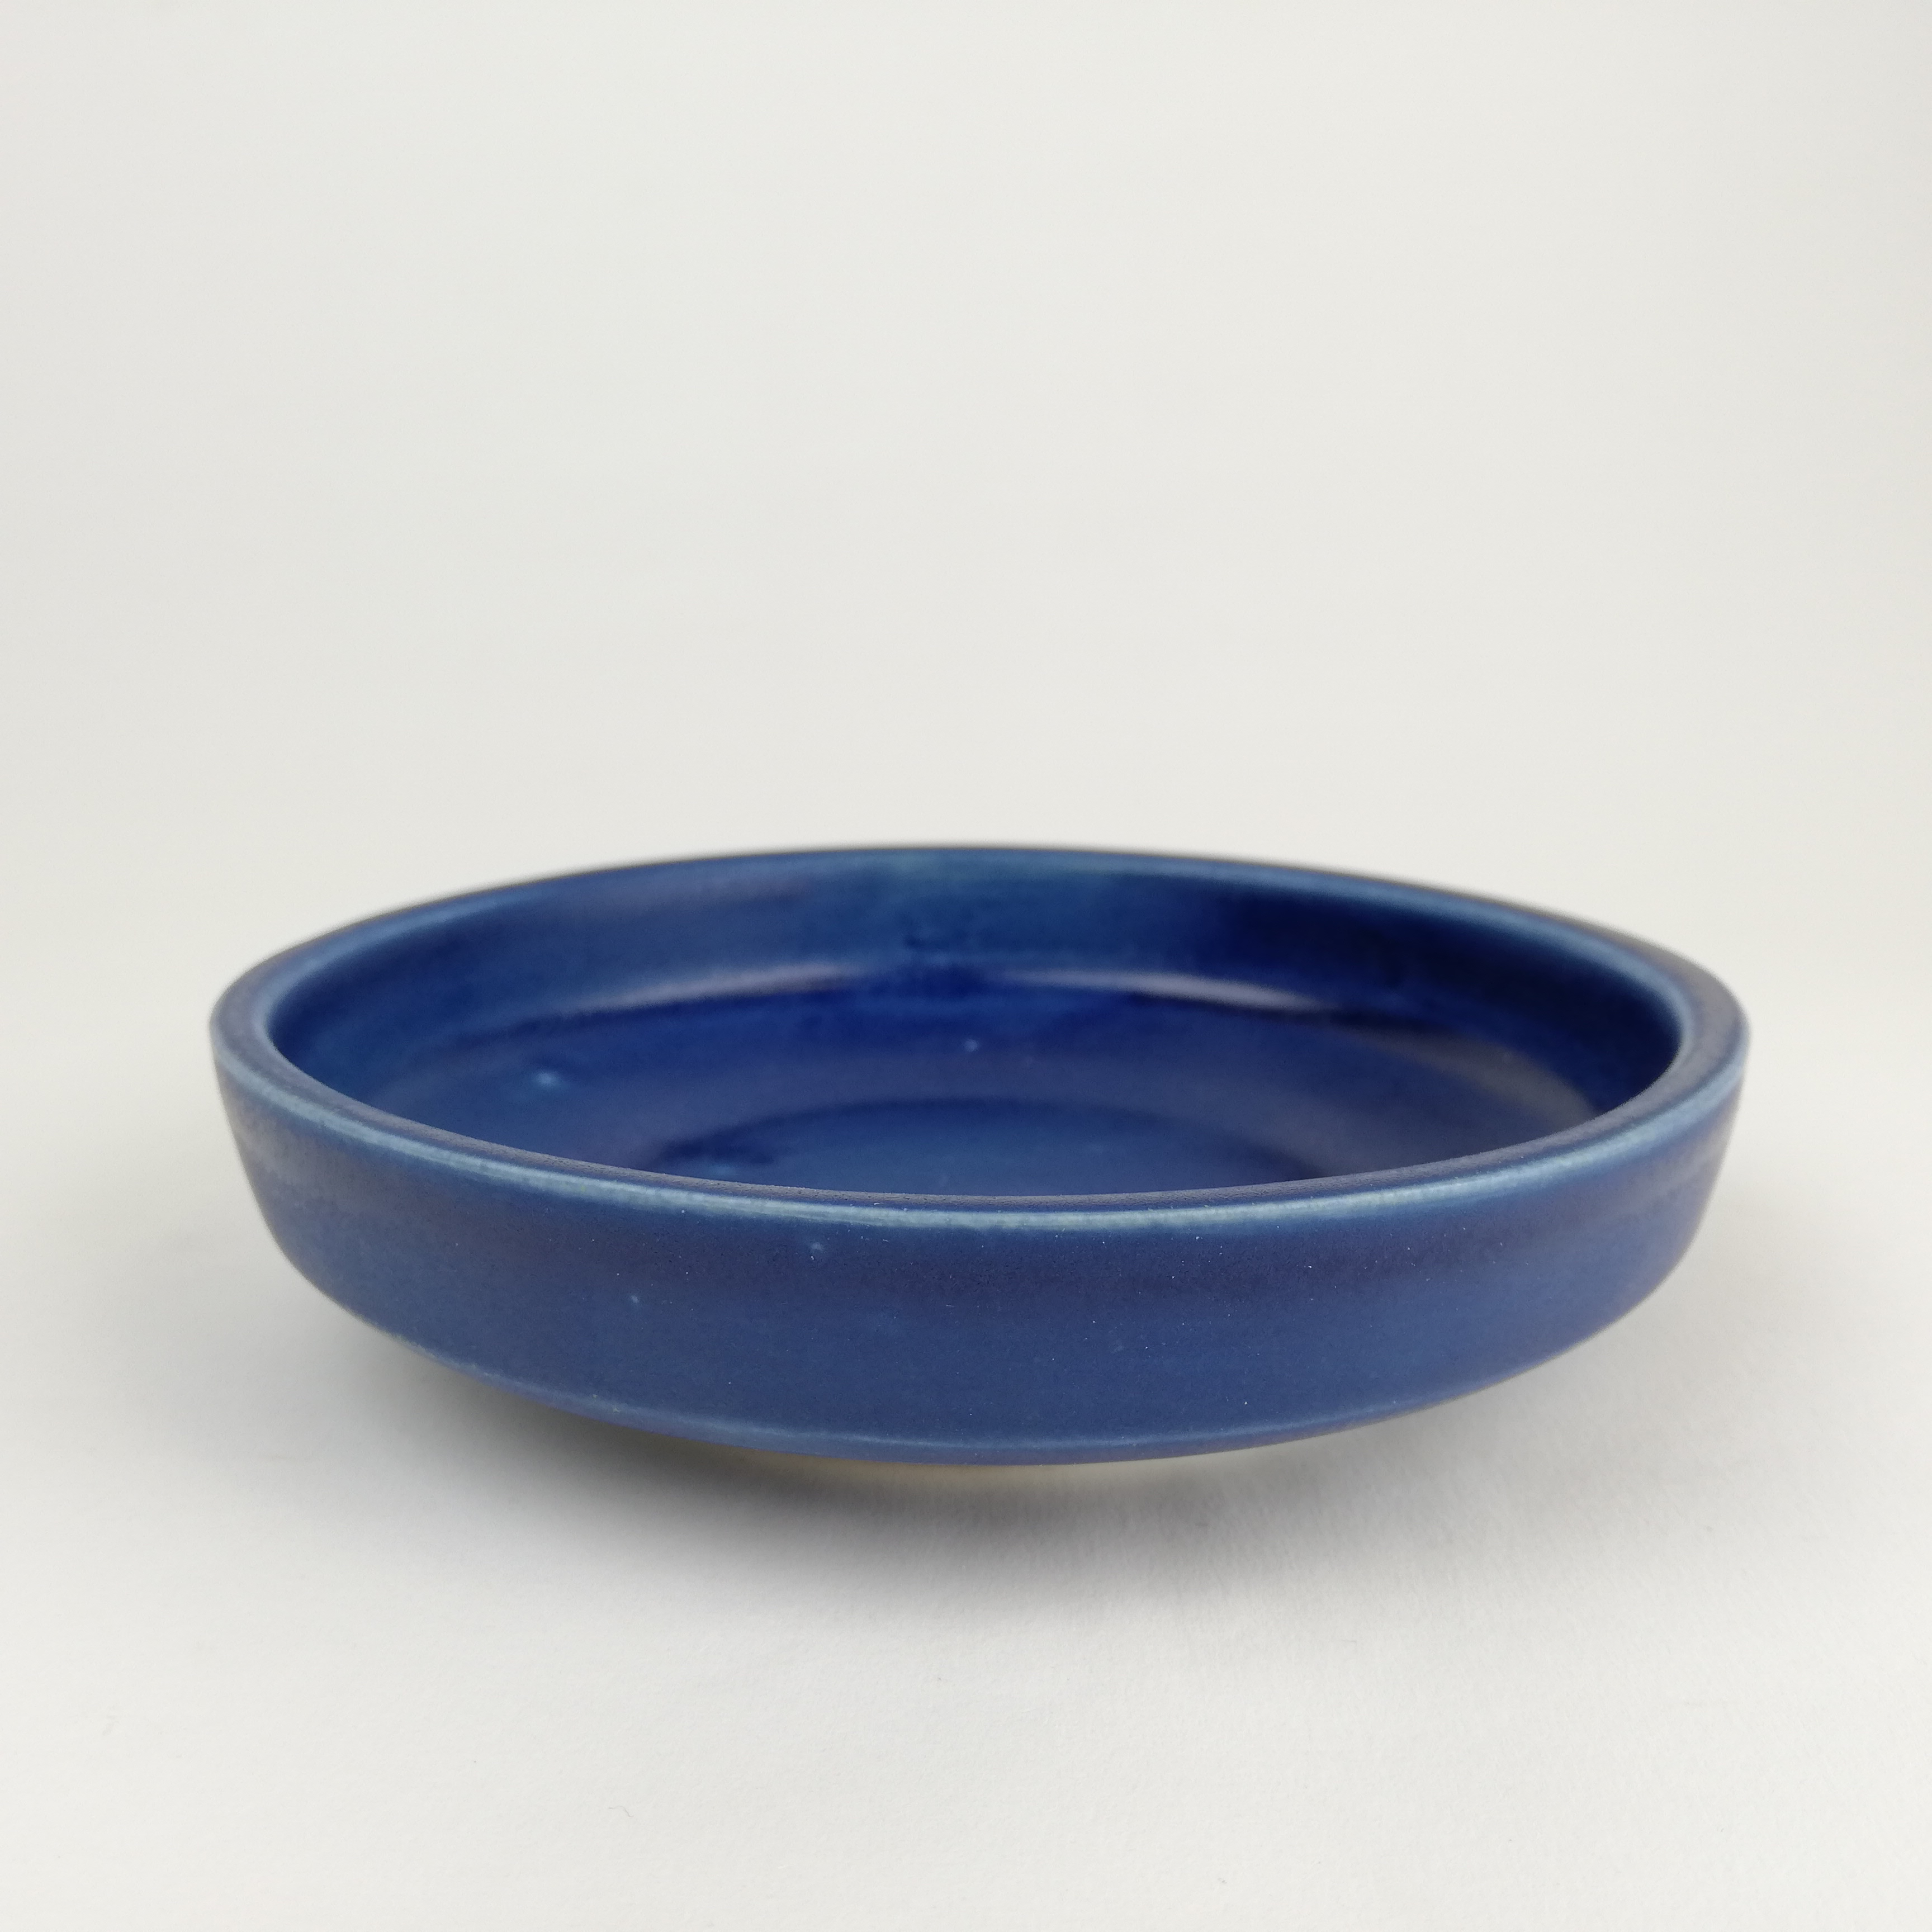 Small Plate with Midnight Blue glaze